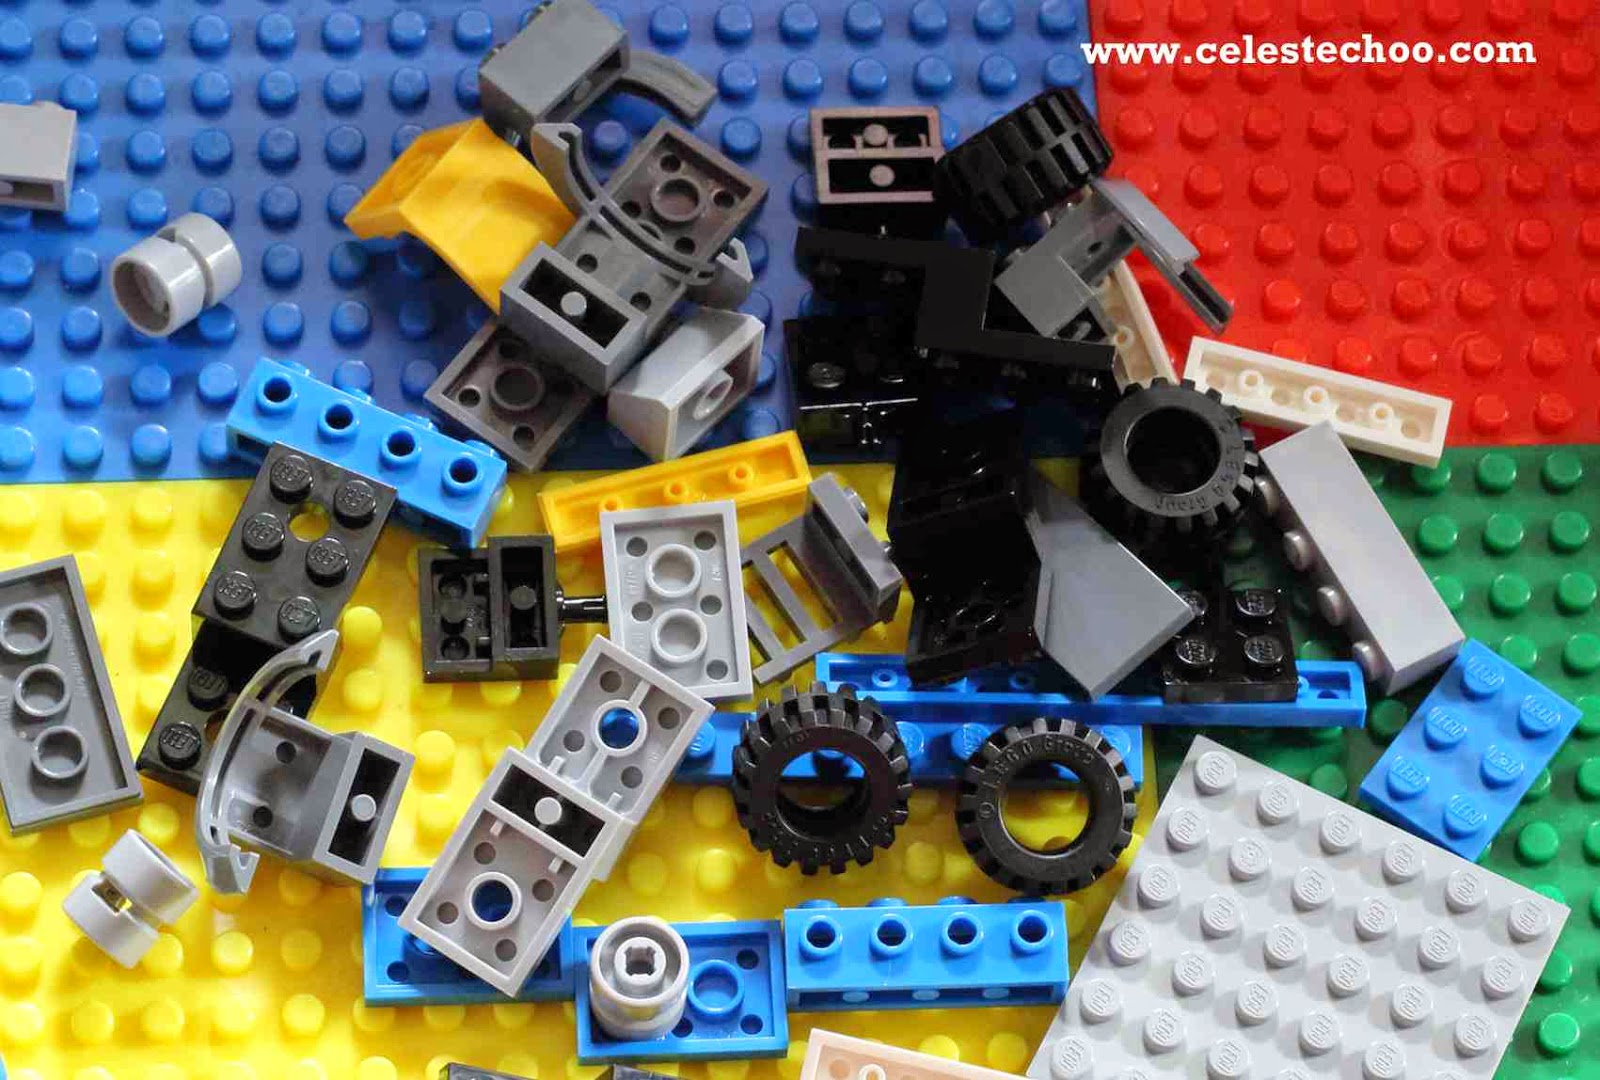 lego-city-police-truck-toy-pieces-of-bricks